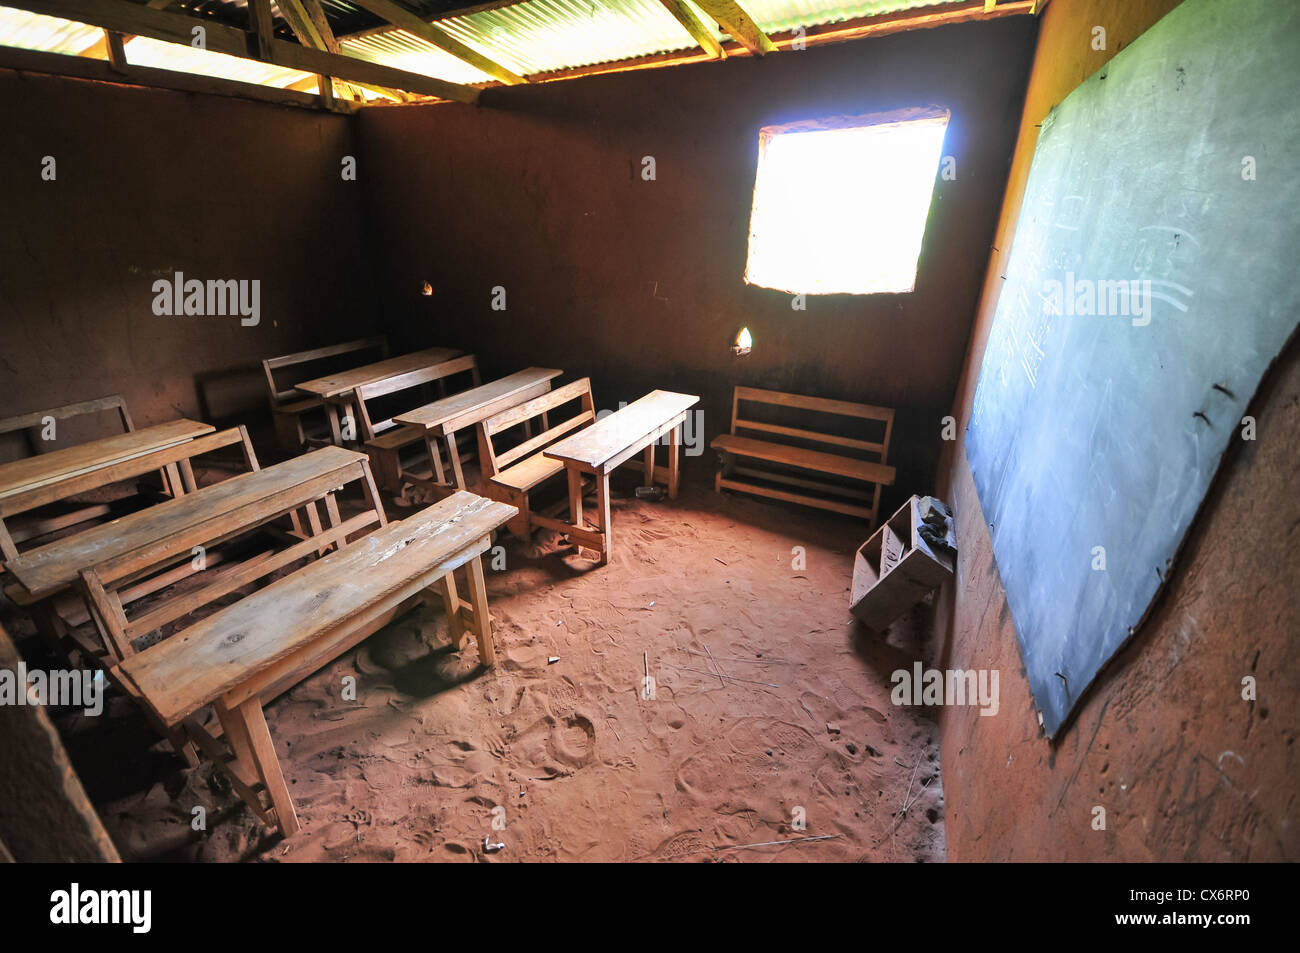 Interior of an elementary school classroom in the Yilo Krobo District not far from Accra, Ghana. Dirt floor. Mud - Stock Image